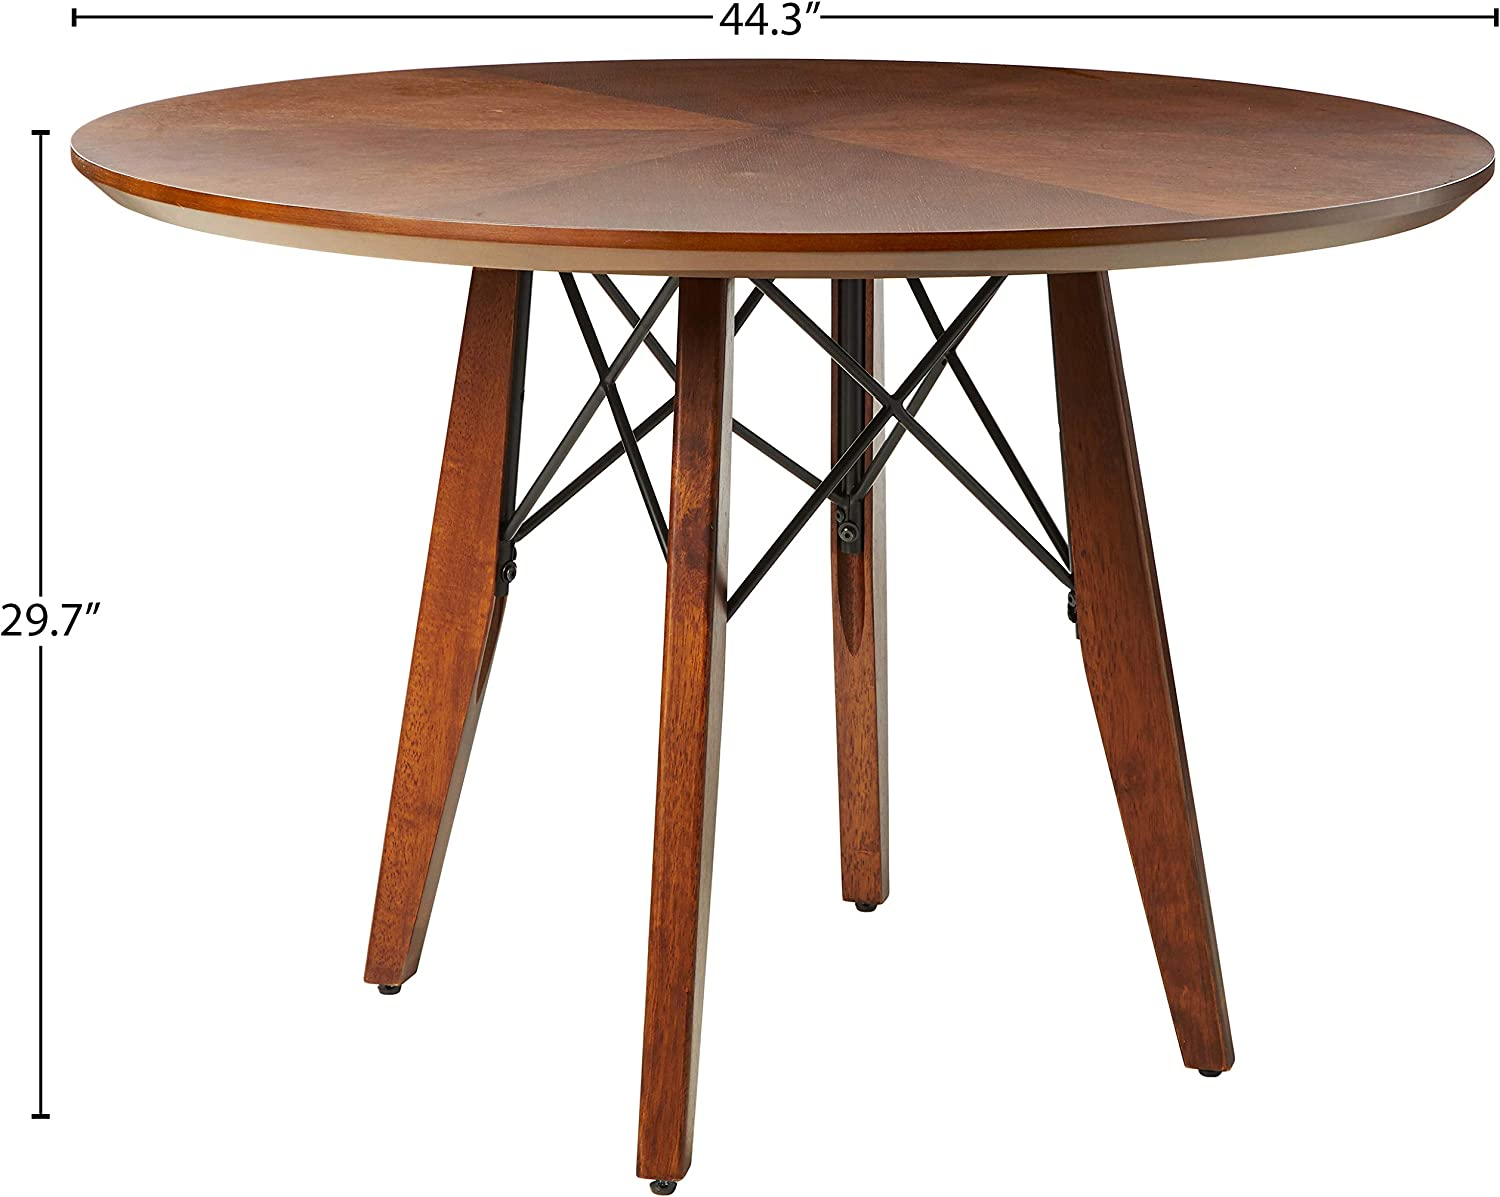 Amazon Com Ink Ivy Clark Dining Table Height Adjustable To Counter Height Round Solid Wood Sits 4 Mid Century Modern Kitchen Pub Style Breakfast Nook Furniture Pecan Table Chair Sets